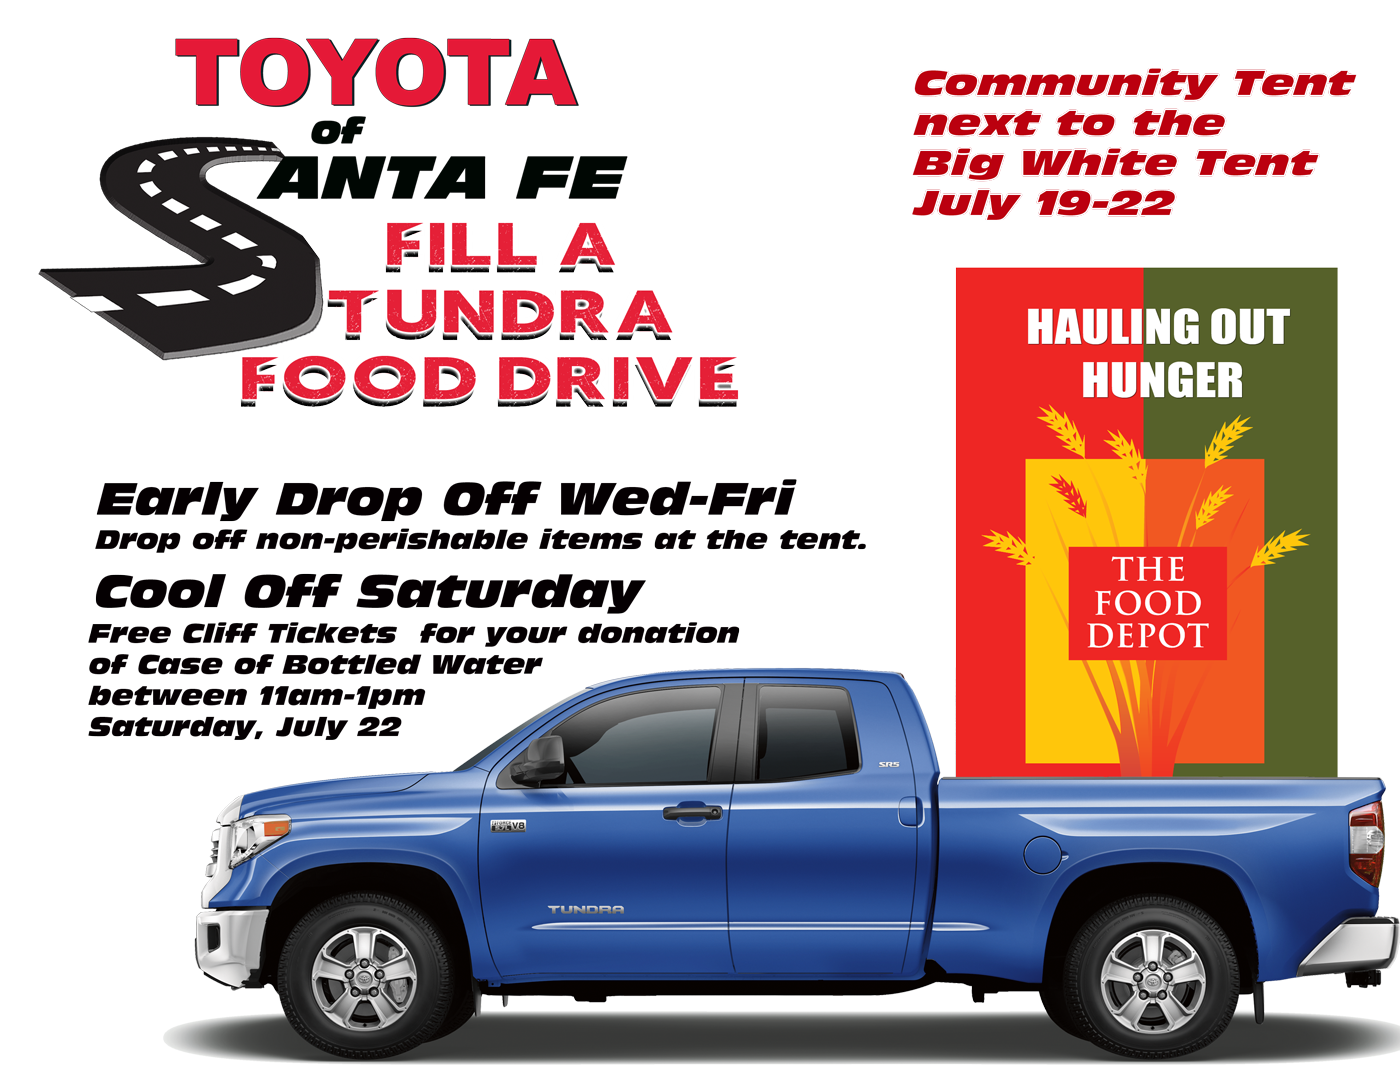 Fill A Tundra Food Drive July 19-22 at Parking Lots of Santa Fe Place Mall